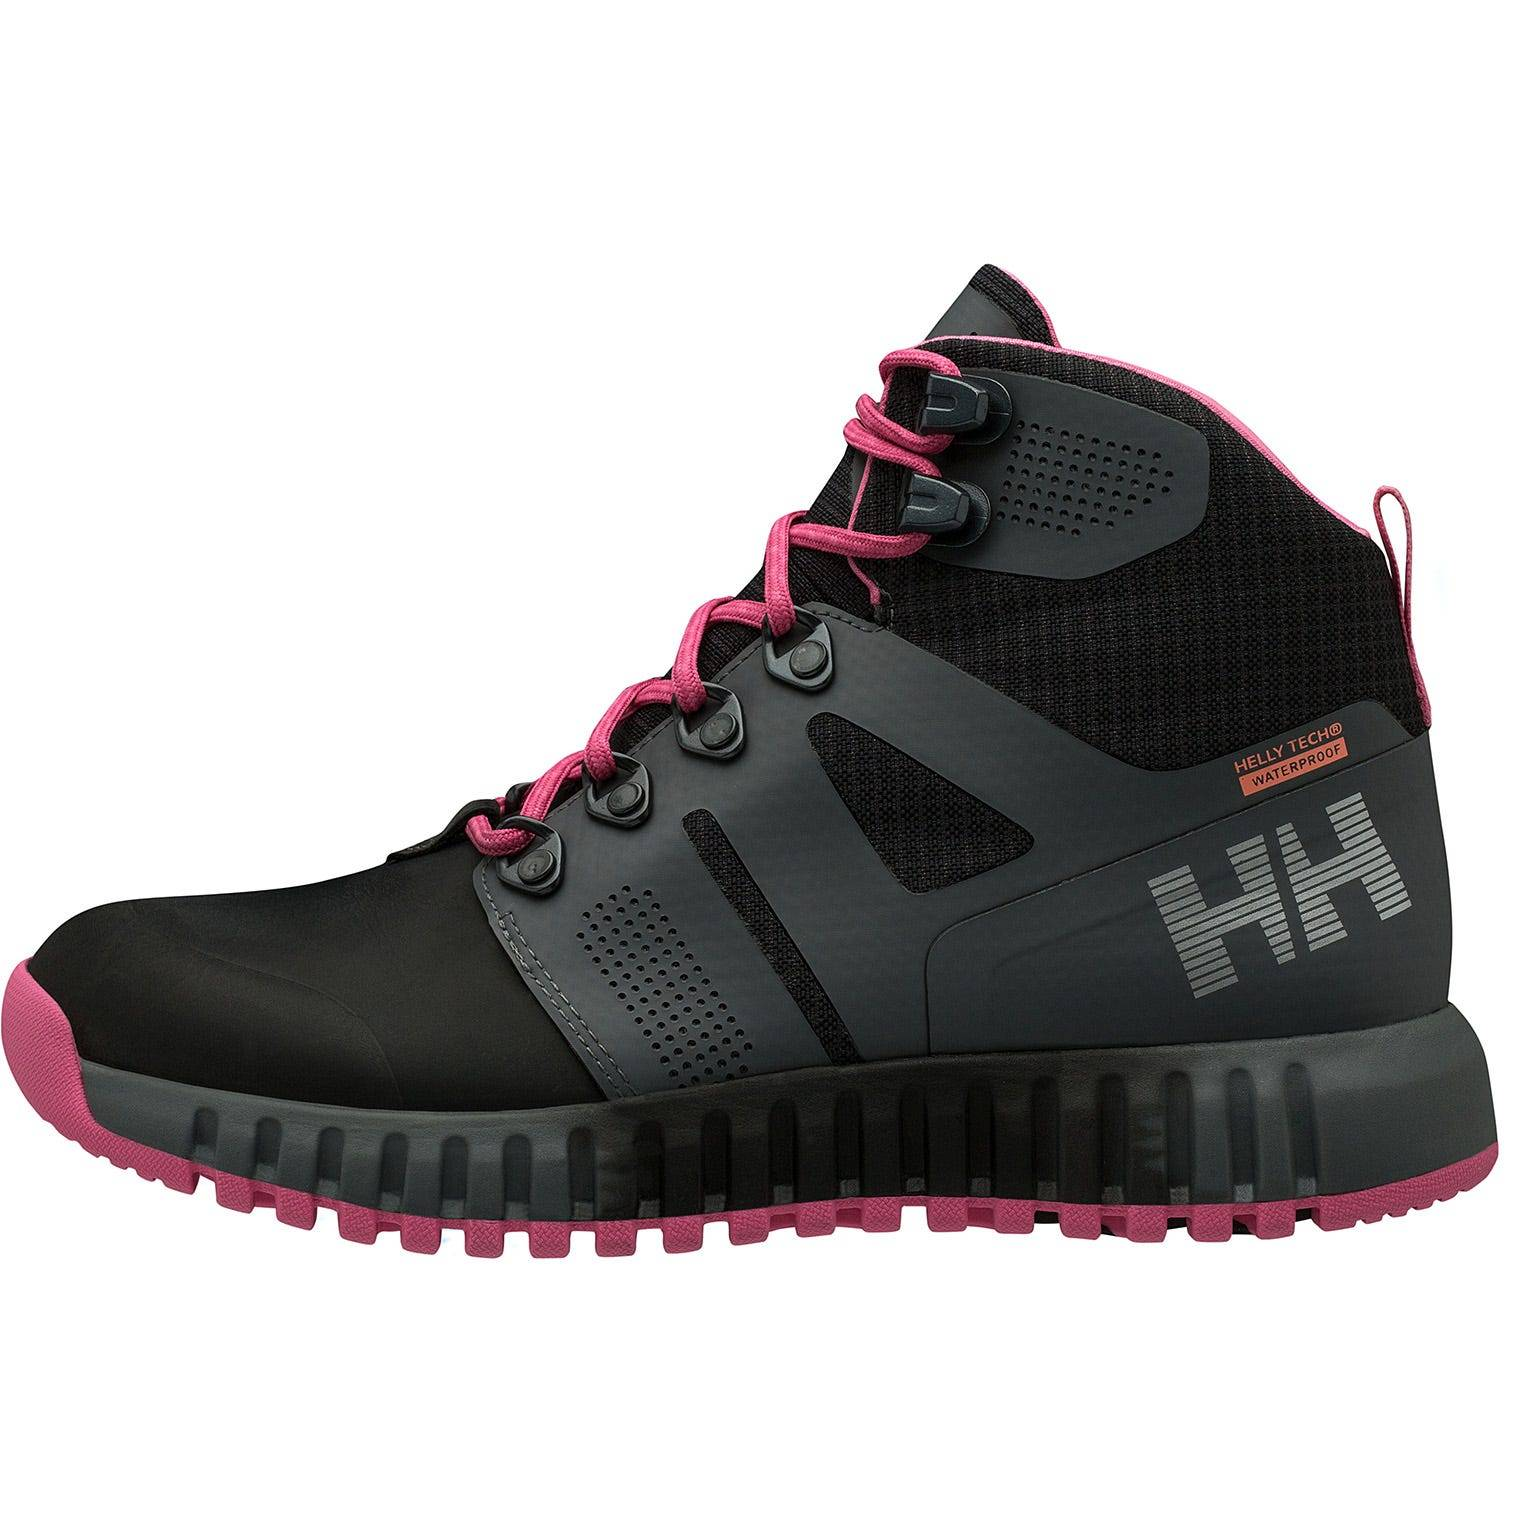 Helly Hansen W Vanir Gallivant Ht Womens Hiking Boot Black 40.5/9